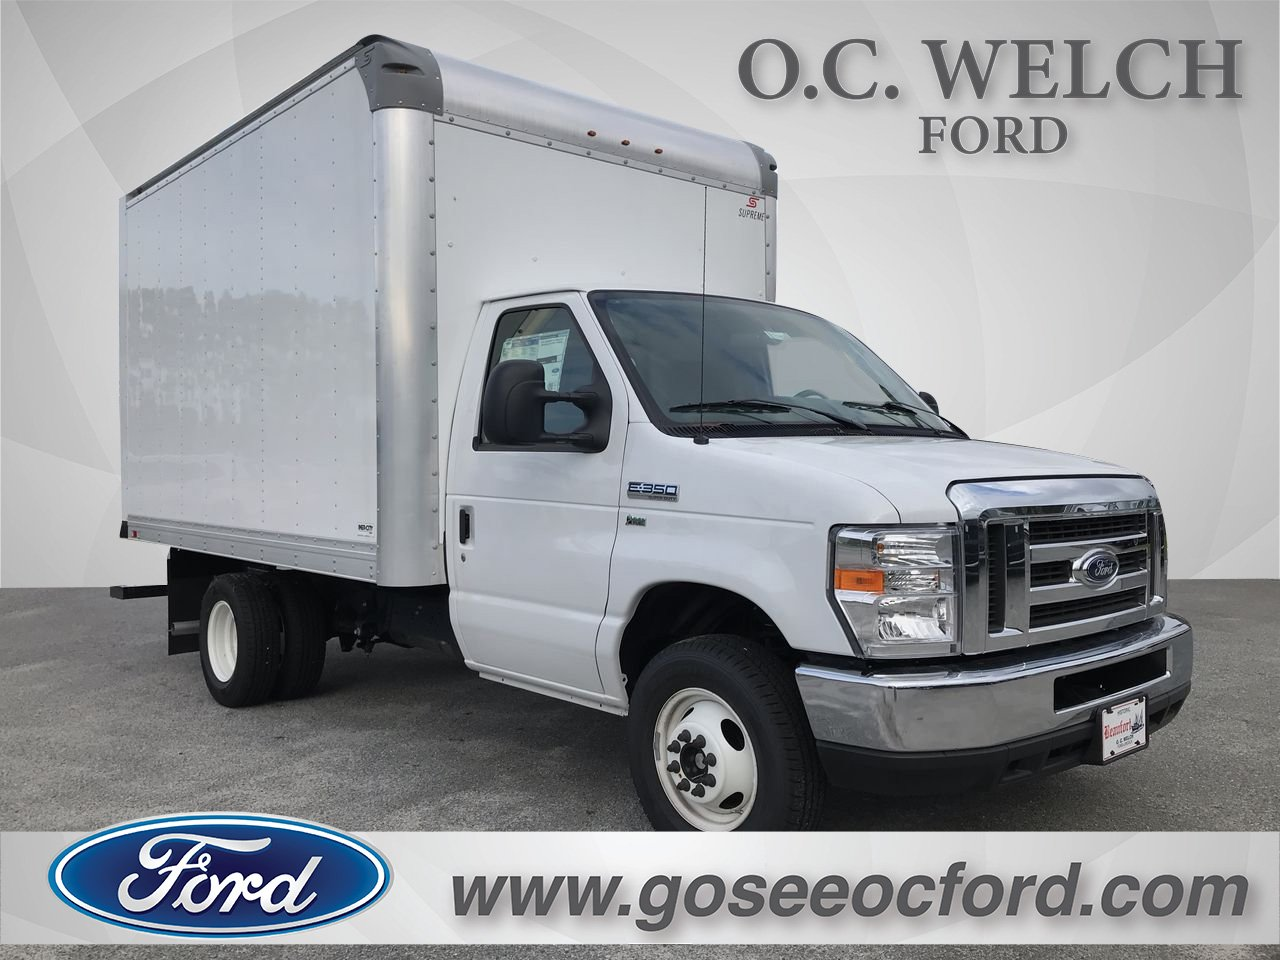 2018 Ford E-350 Cutaway Cab/Chassis